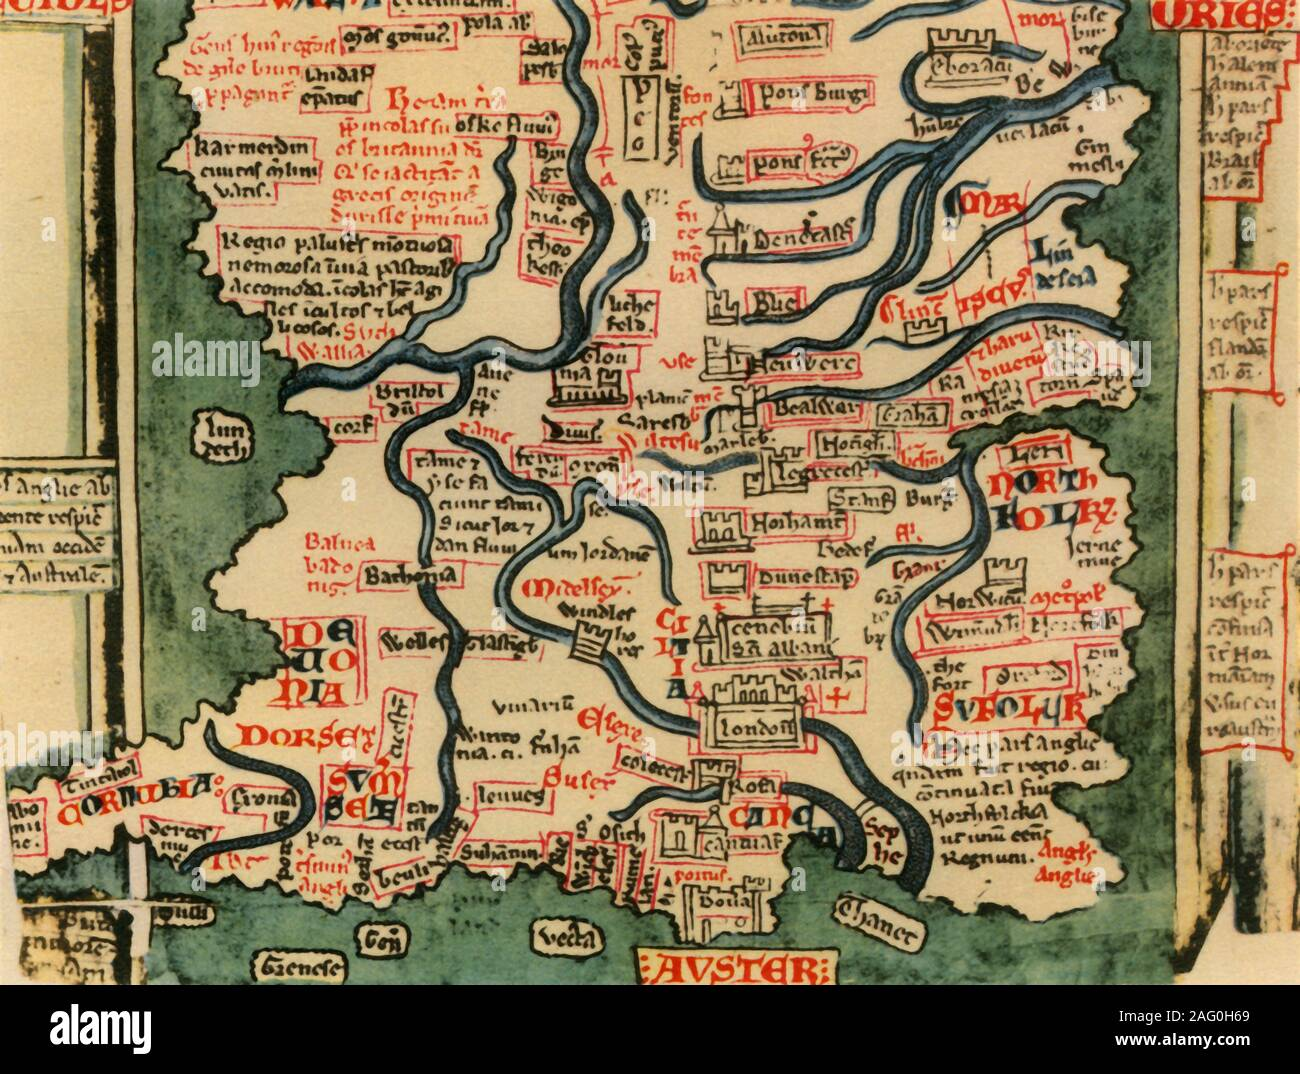 "'Matthew Paris's Map of Great Britain, c.1250', (1944). Detail showing rivers and towns in the south of England and part of Wales. Many place-names are still recognisable today. The word 'Auster', written over the English Channel at the bottom, refers to wind bringing heavy cloud cover and fog. Map drawn by the historian Matthew Paris, a monk at St Alban's Abbey. Cotton MS Claudius D.vi, f.12v, manuscript in the British Library, London. From ""British Maps and Map-Makers"", by Edward Lynam. [Collins, London, 1944] Stock Photo"